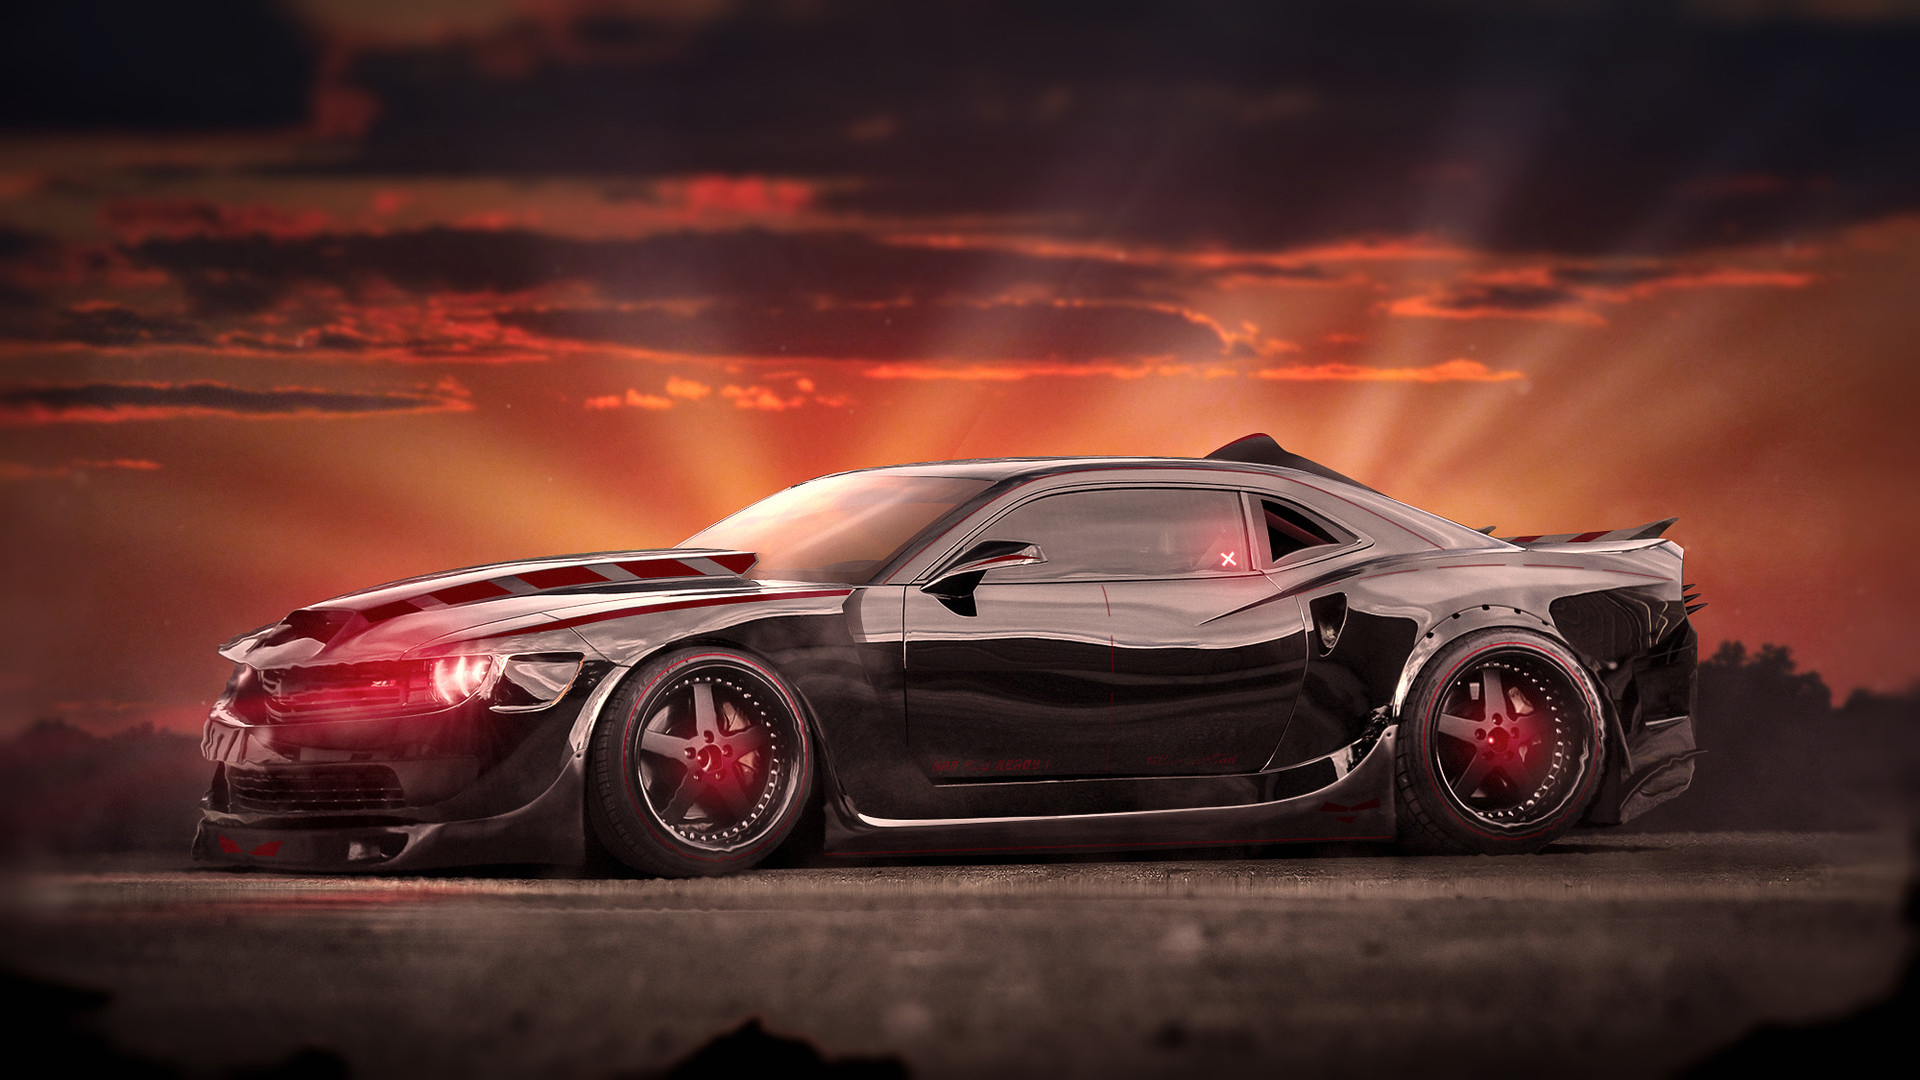 Evil Chevrolet Camaro Muscle Car Wallpaper | HD Car ...